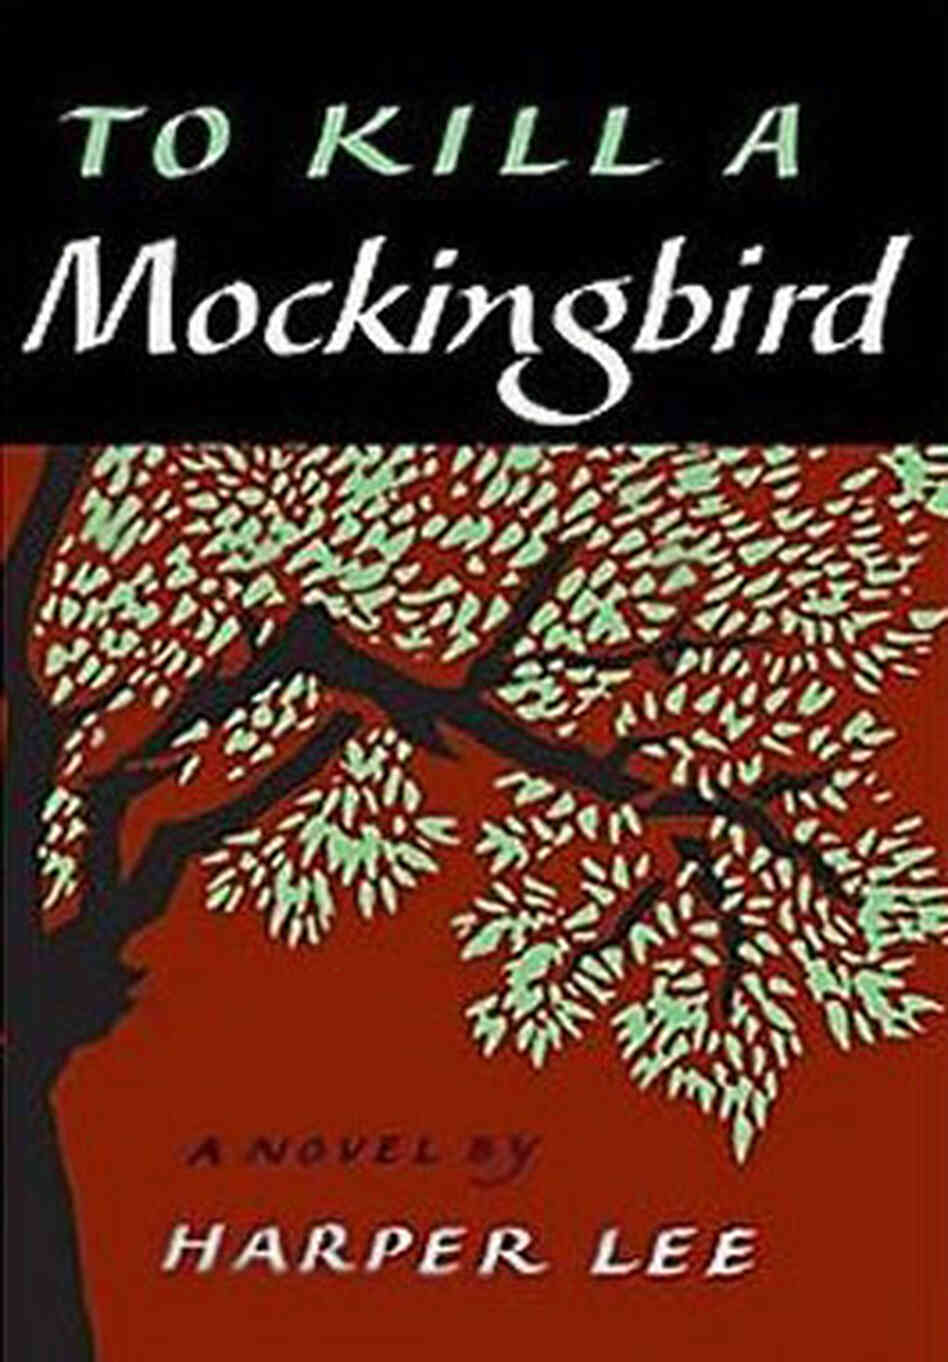 To kill a mockingbird author s purpose